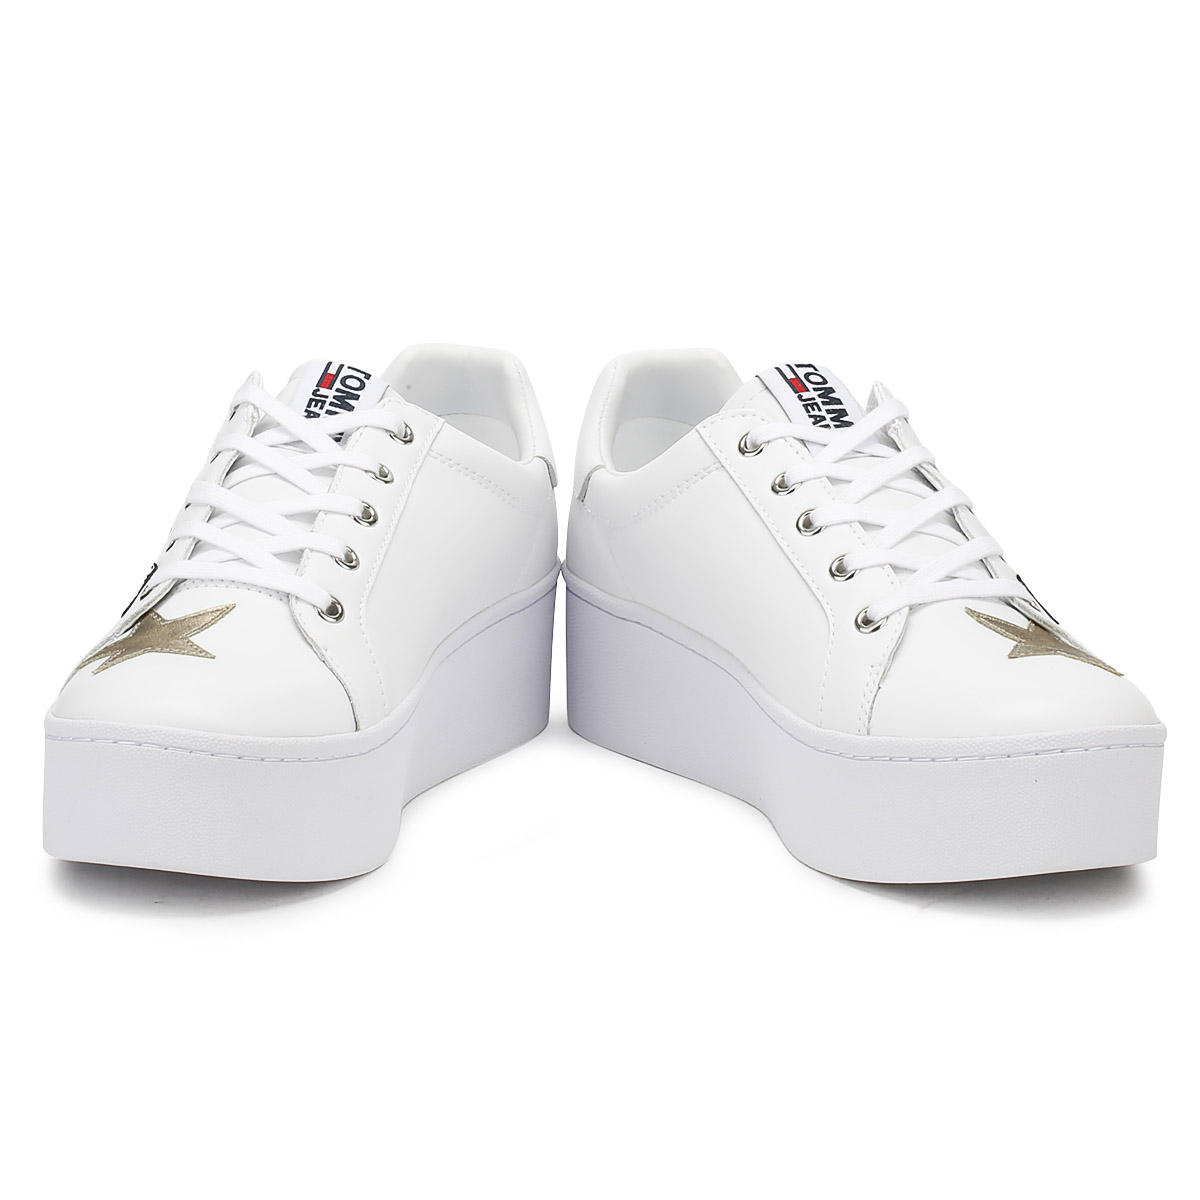 8f8e94561b1a6 Tommy Hilfiger Womens Trainers White Jeans Icon Sparkle Lace Up Casual Shoes